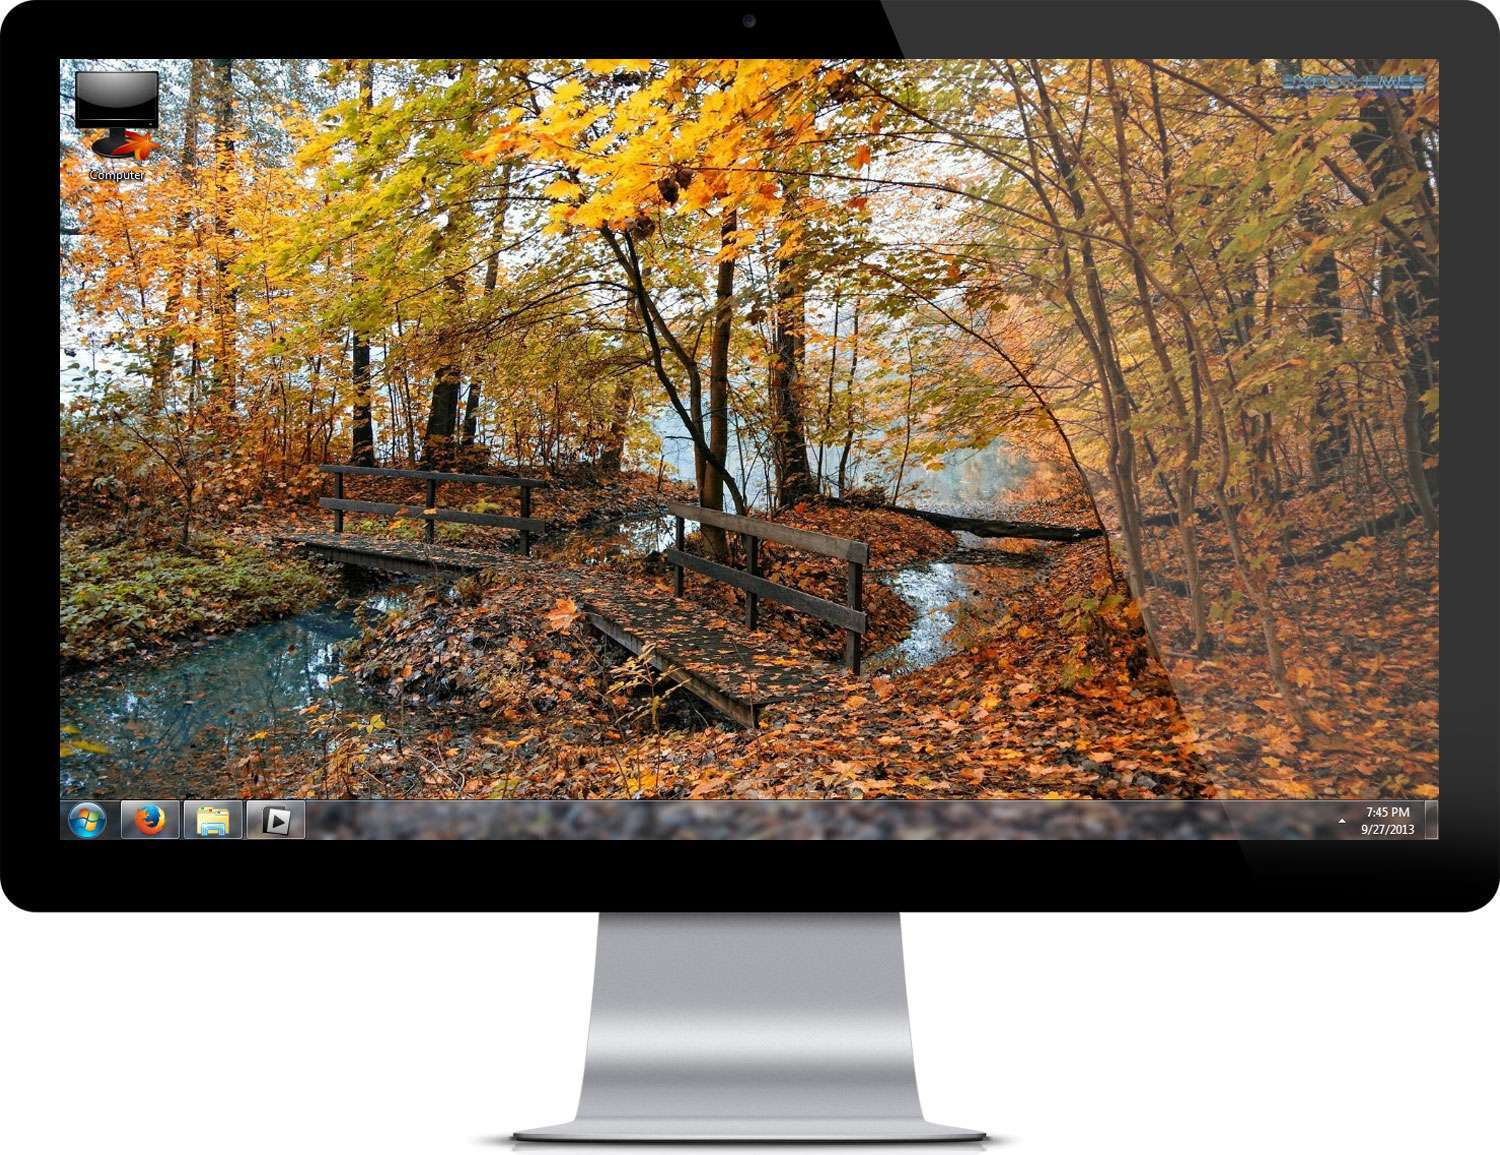 Download Autumn Wallpaper Theme For Windows 7 and Windows 8 1500x1155